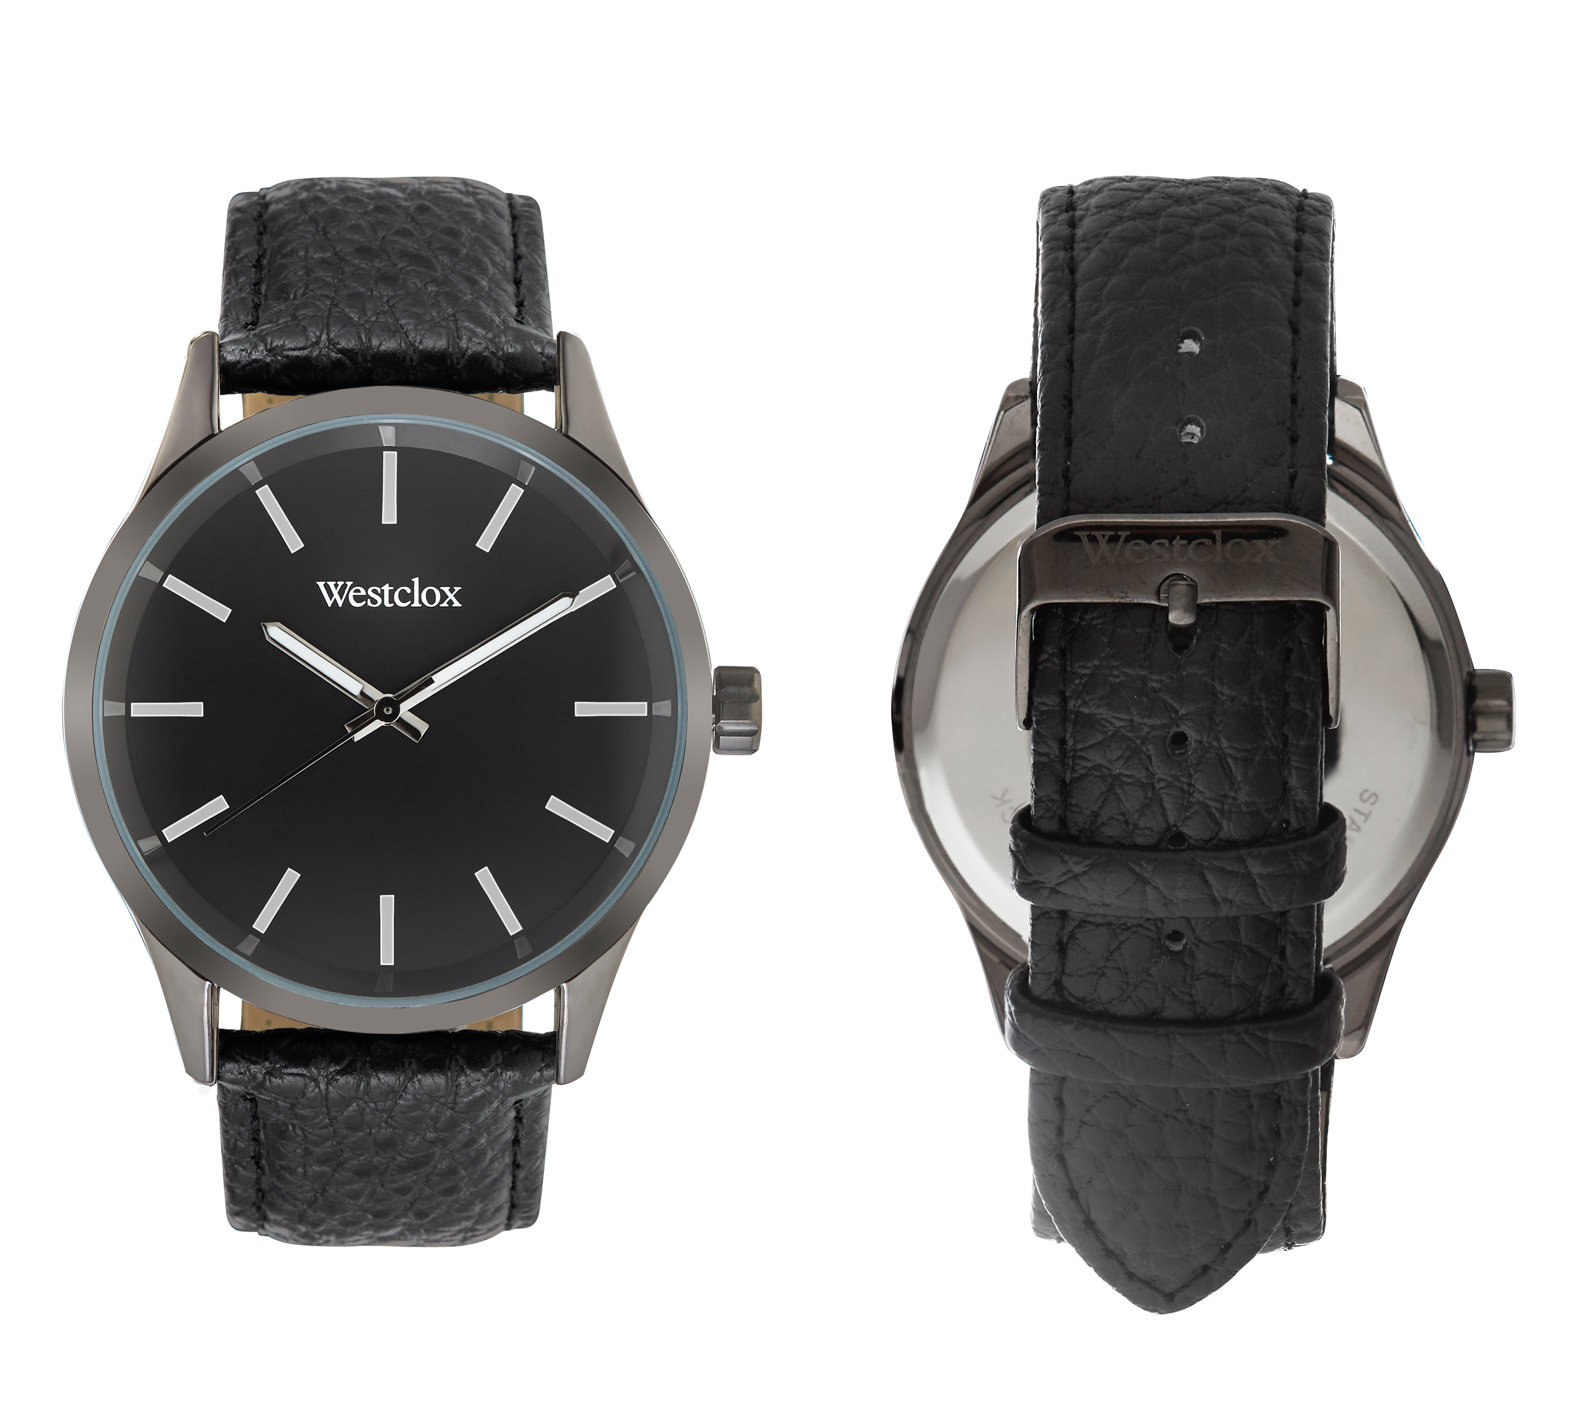 Westclox Watch with Genuine Black Leather Band and Black Dial 51001